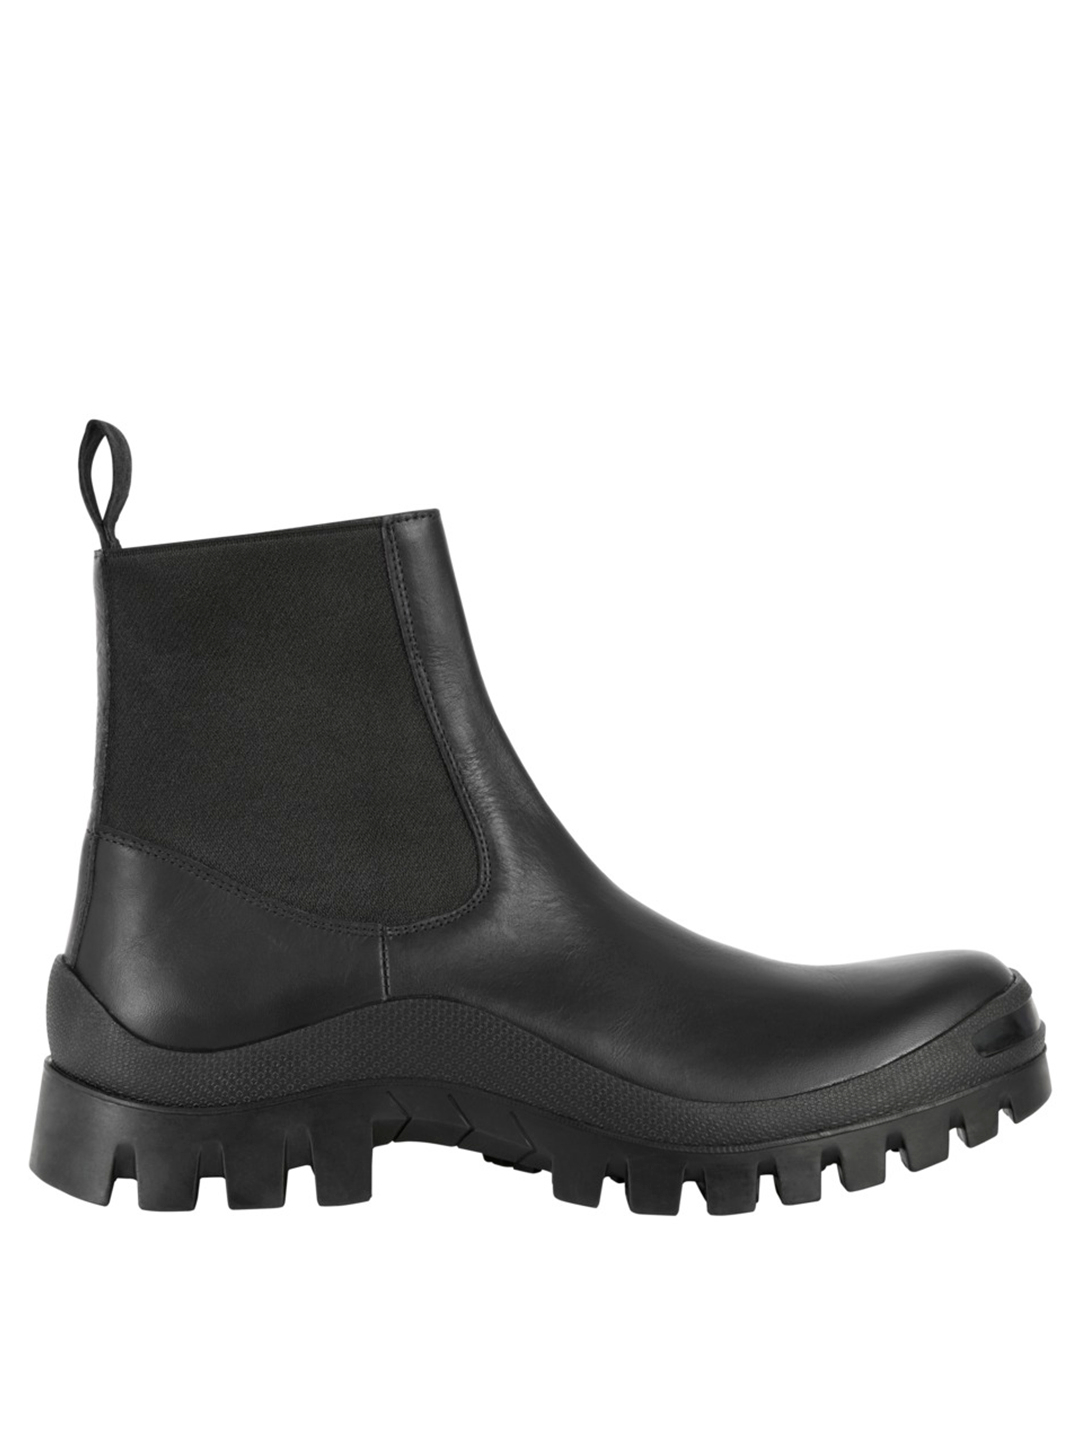 ATP ATELIER Catania Leather Ankle Boots Women's Black